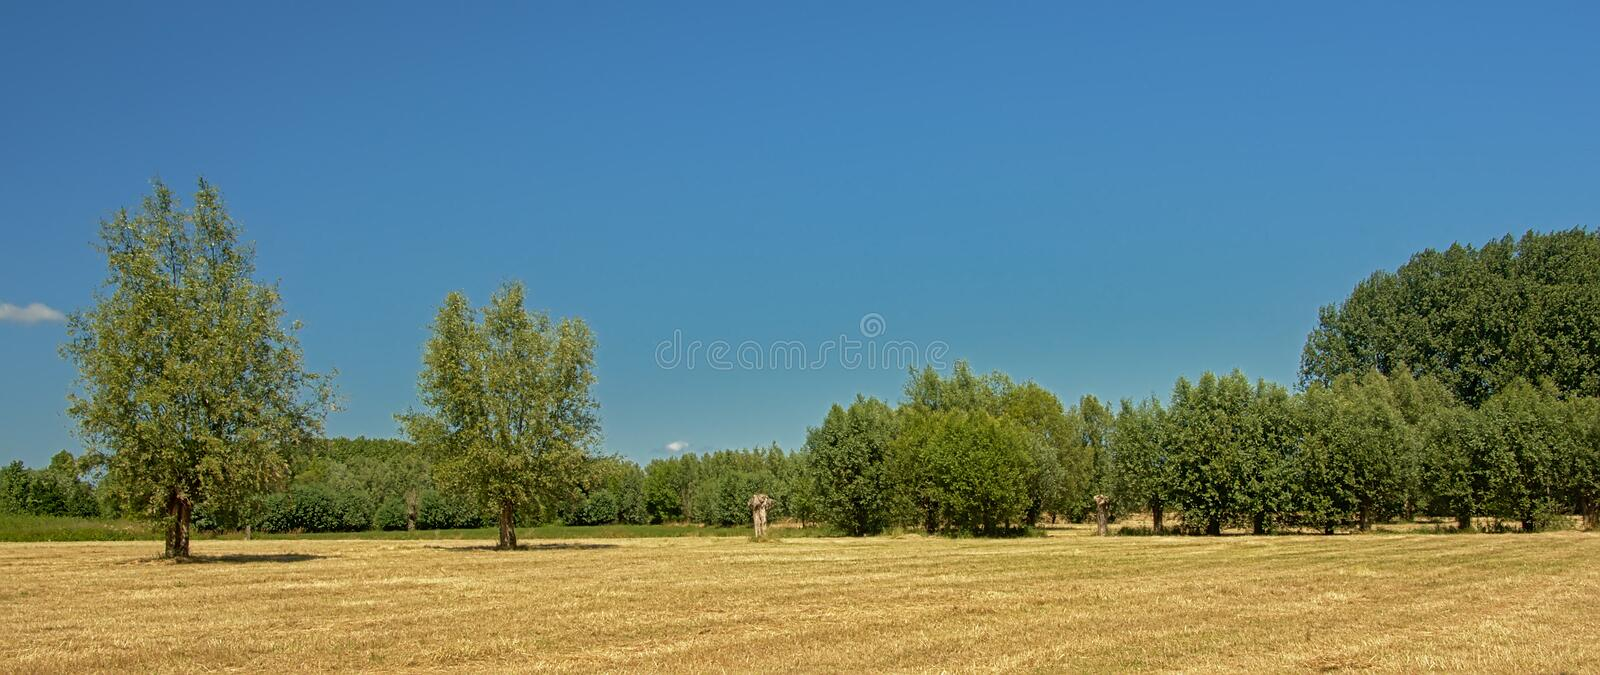 Sunny dry farm land with trees under a clear blue sky in Kalkense Meersen nature reserve, Flanders, Belgium. Part of the Sigmaplan which protects Flanders from royalty free stock photos